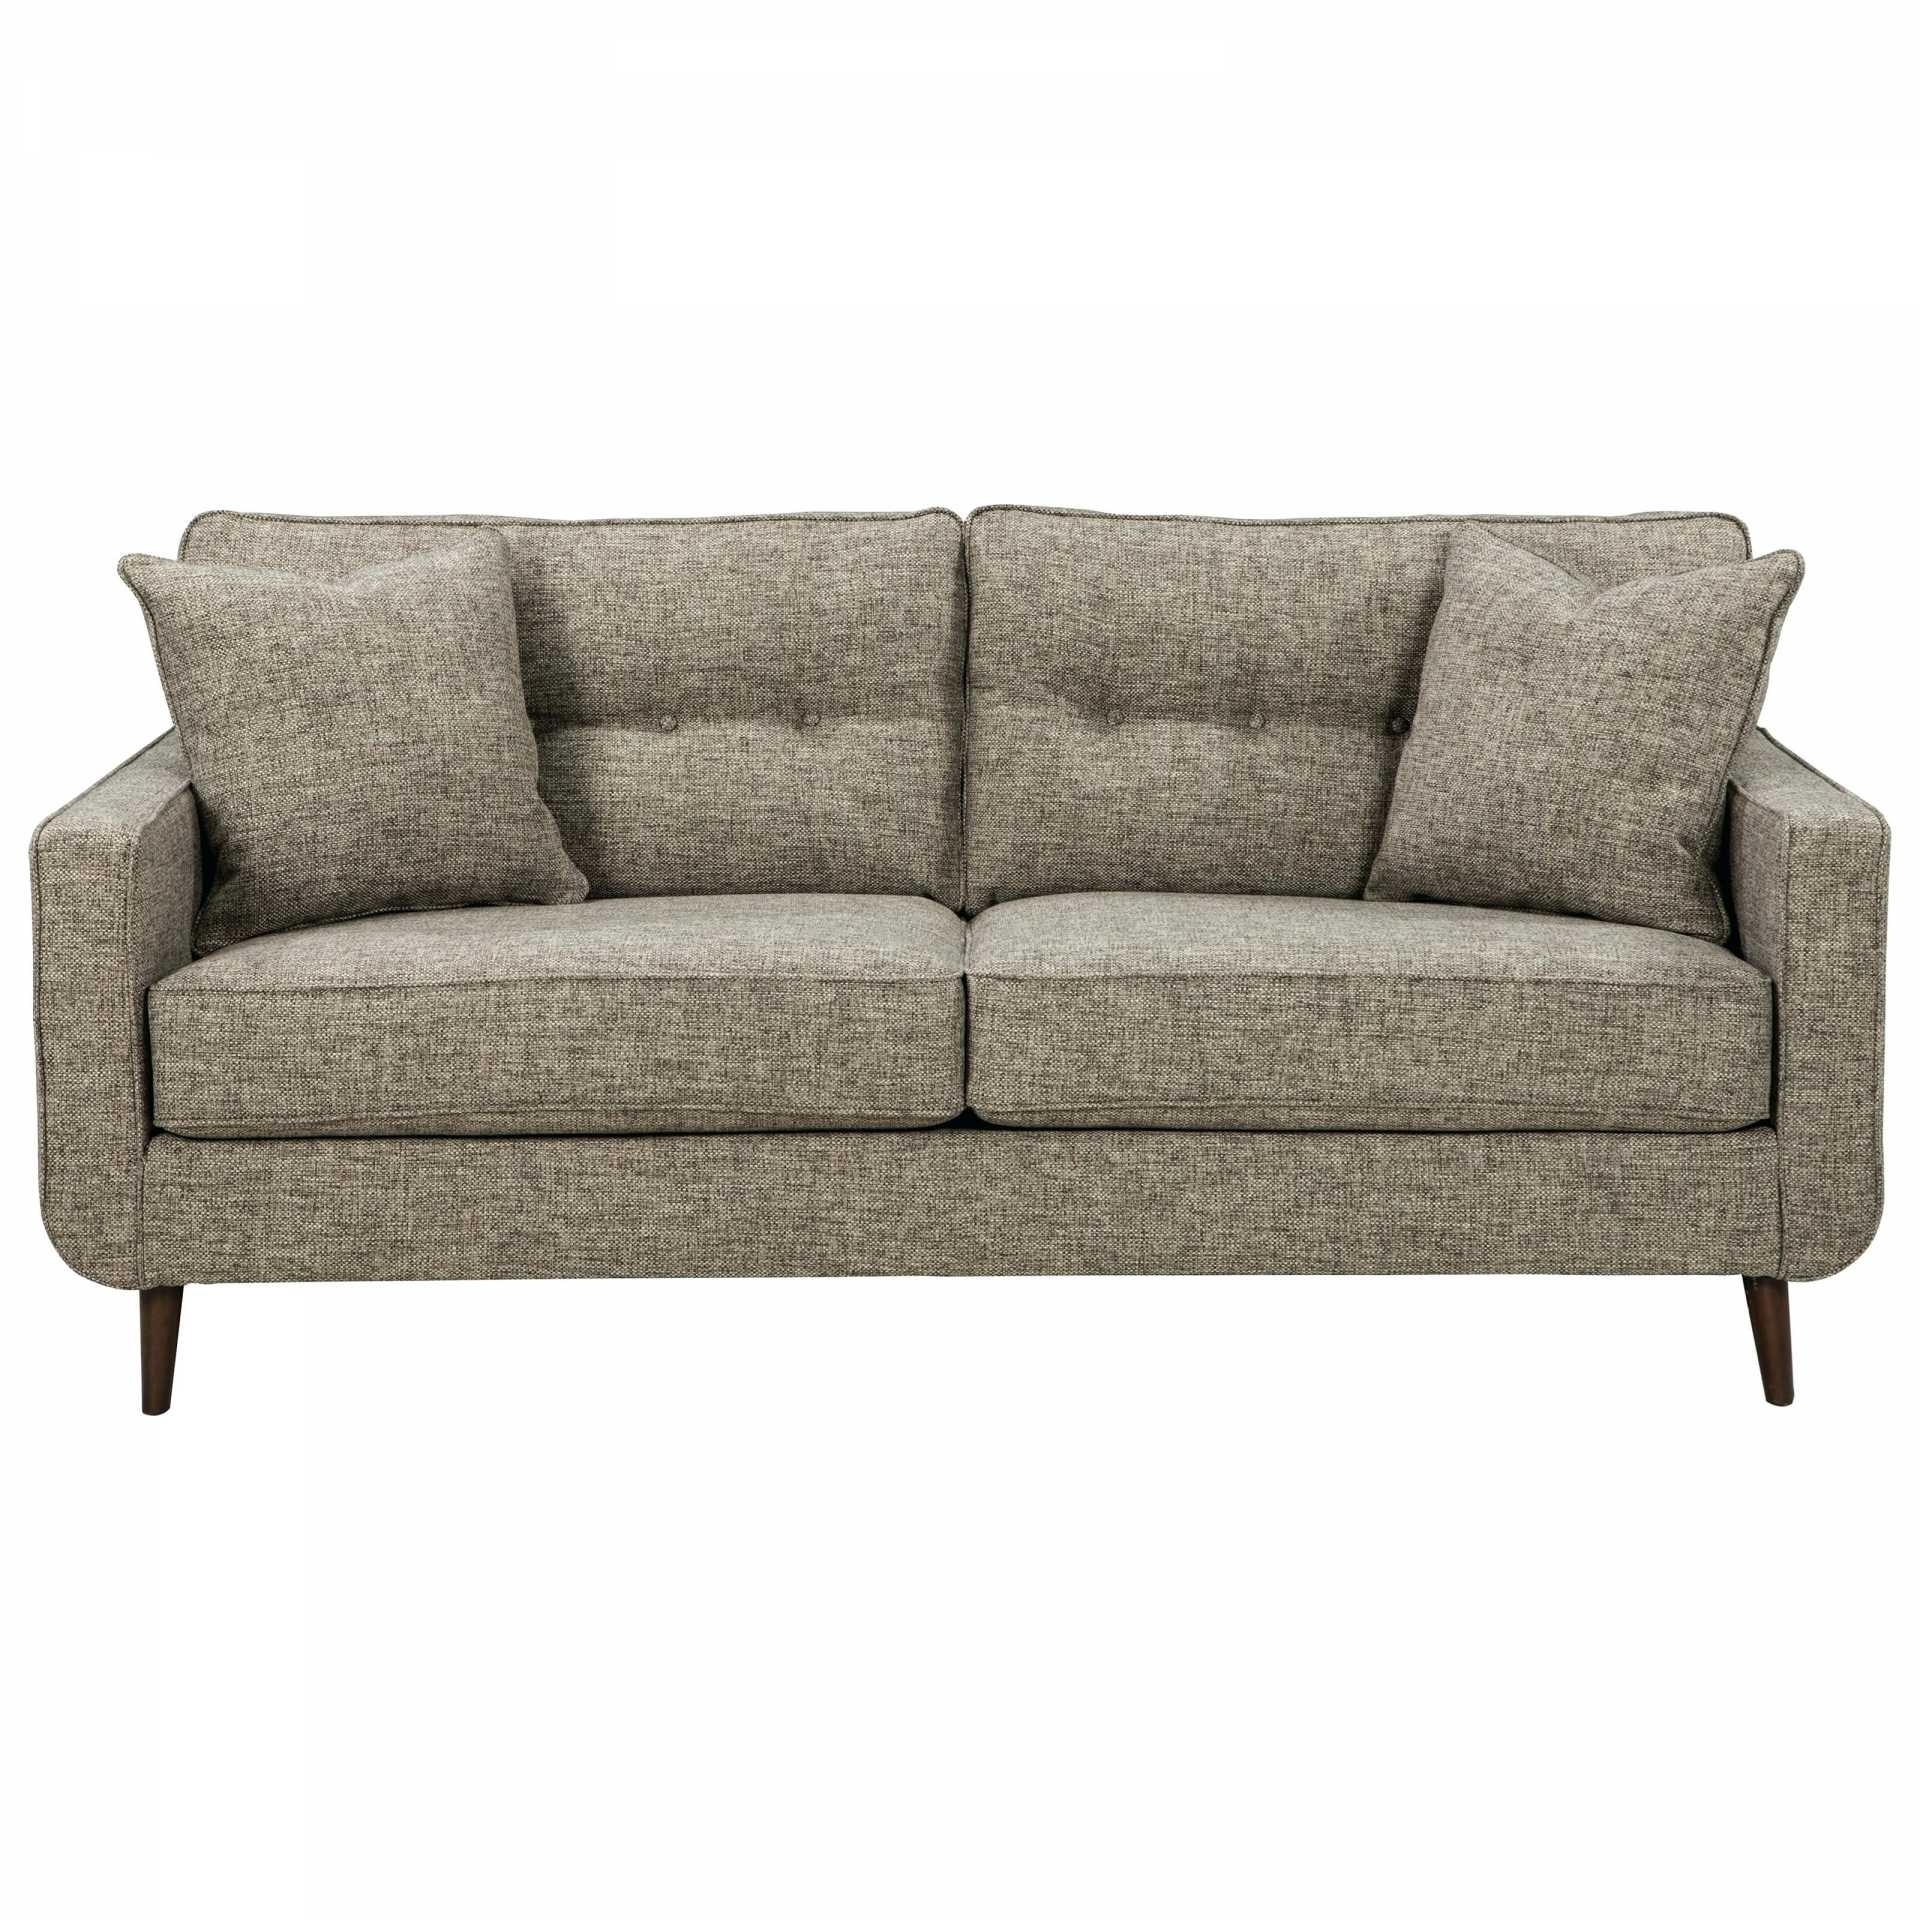 Fashionable Loveseat : Sectional Sofa: Sectional Sofas On Craigslist Augusta Regarding Sectional Sofas At Craigslist (View 20 of 20)